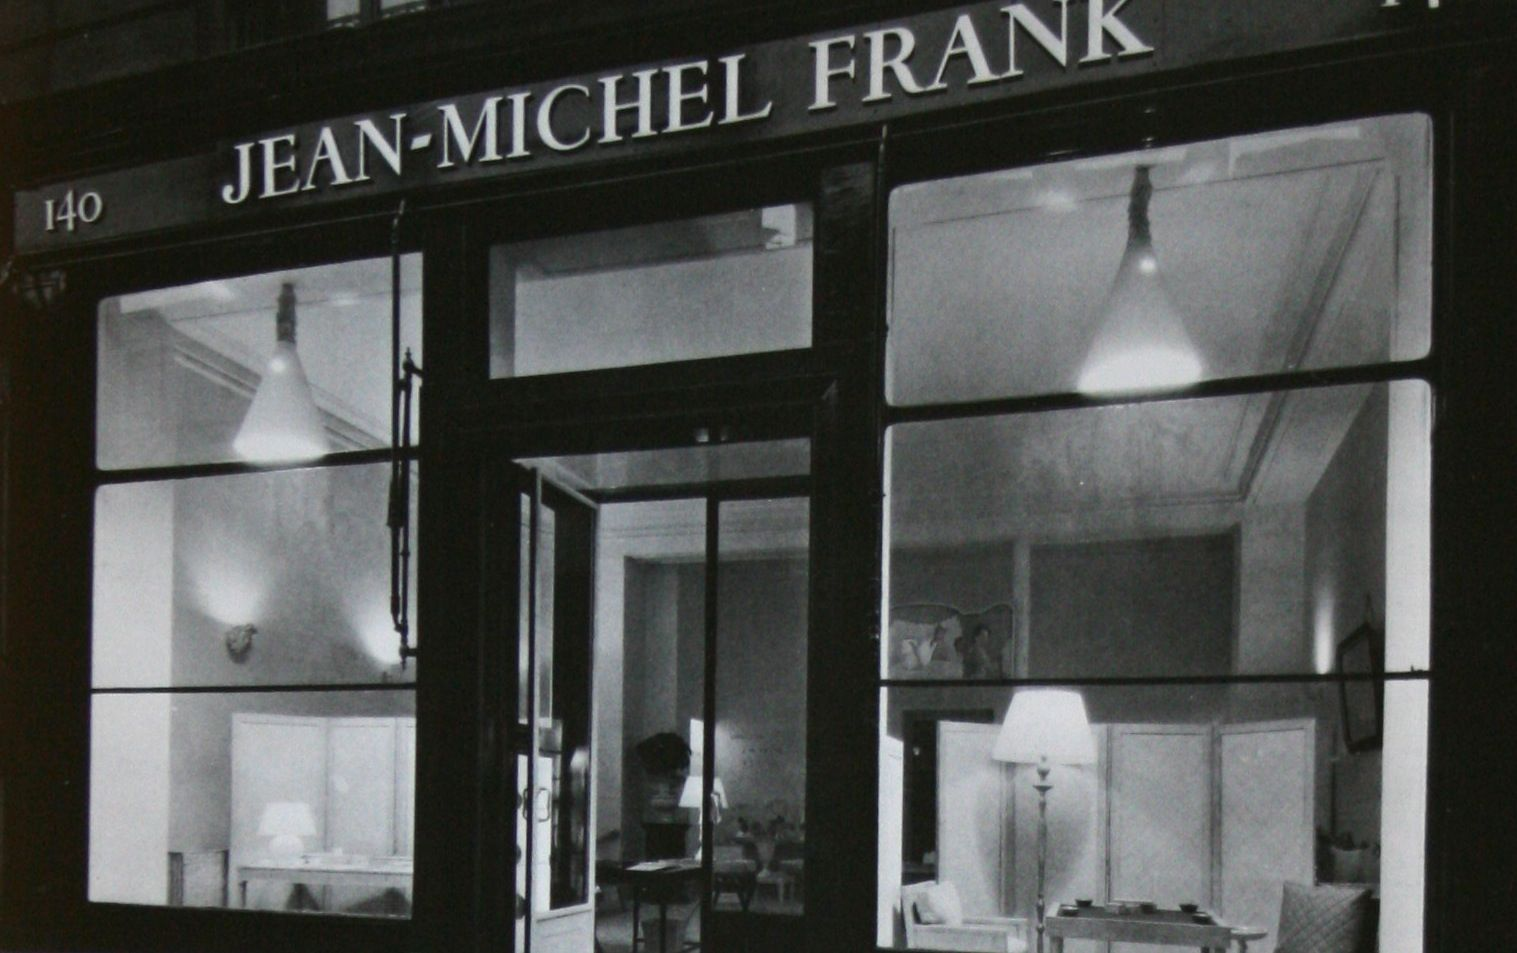 Interieur Design Geschiedenis Jean Michel Frank Furniture Design Jean Michel Frank 1895 1941